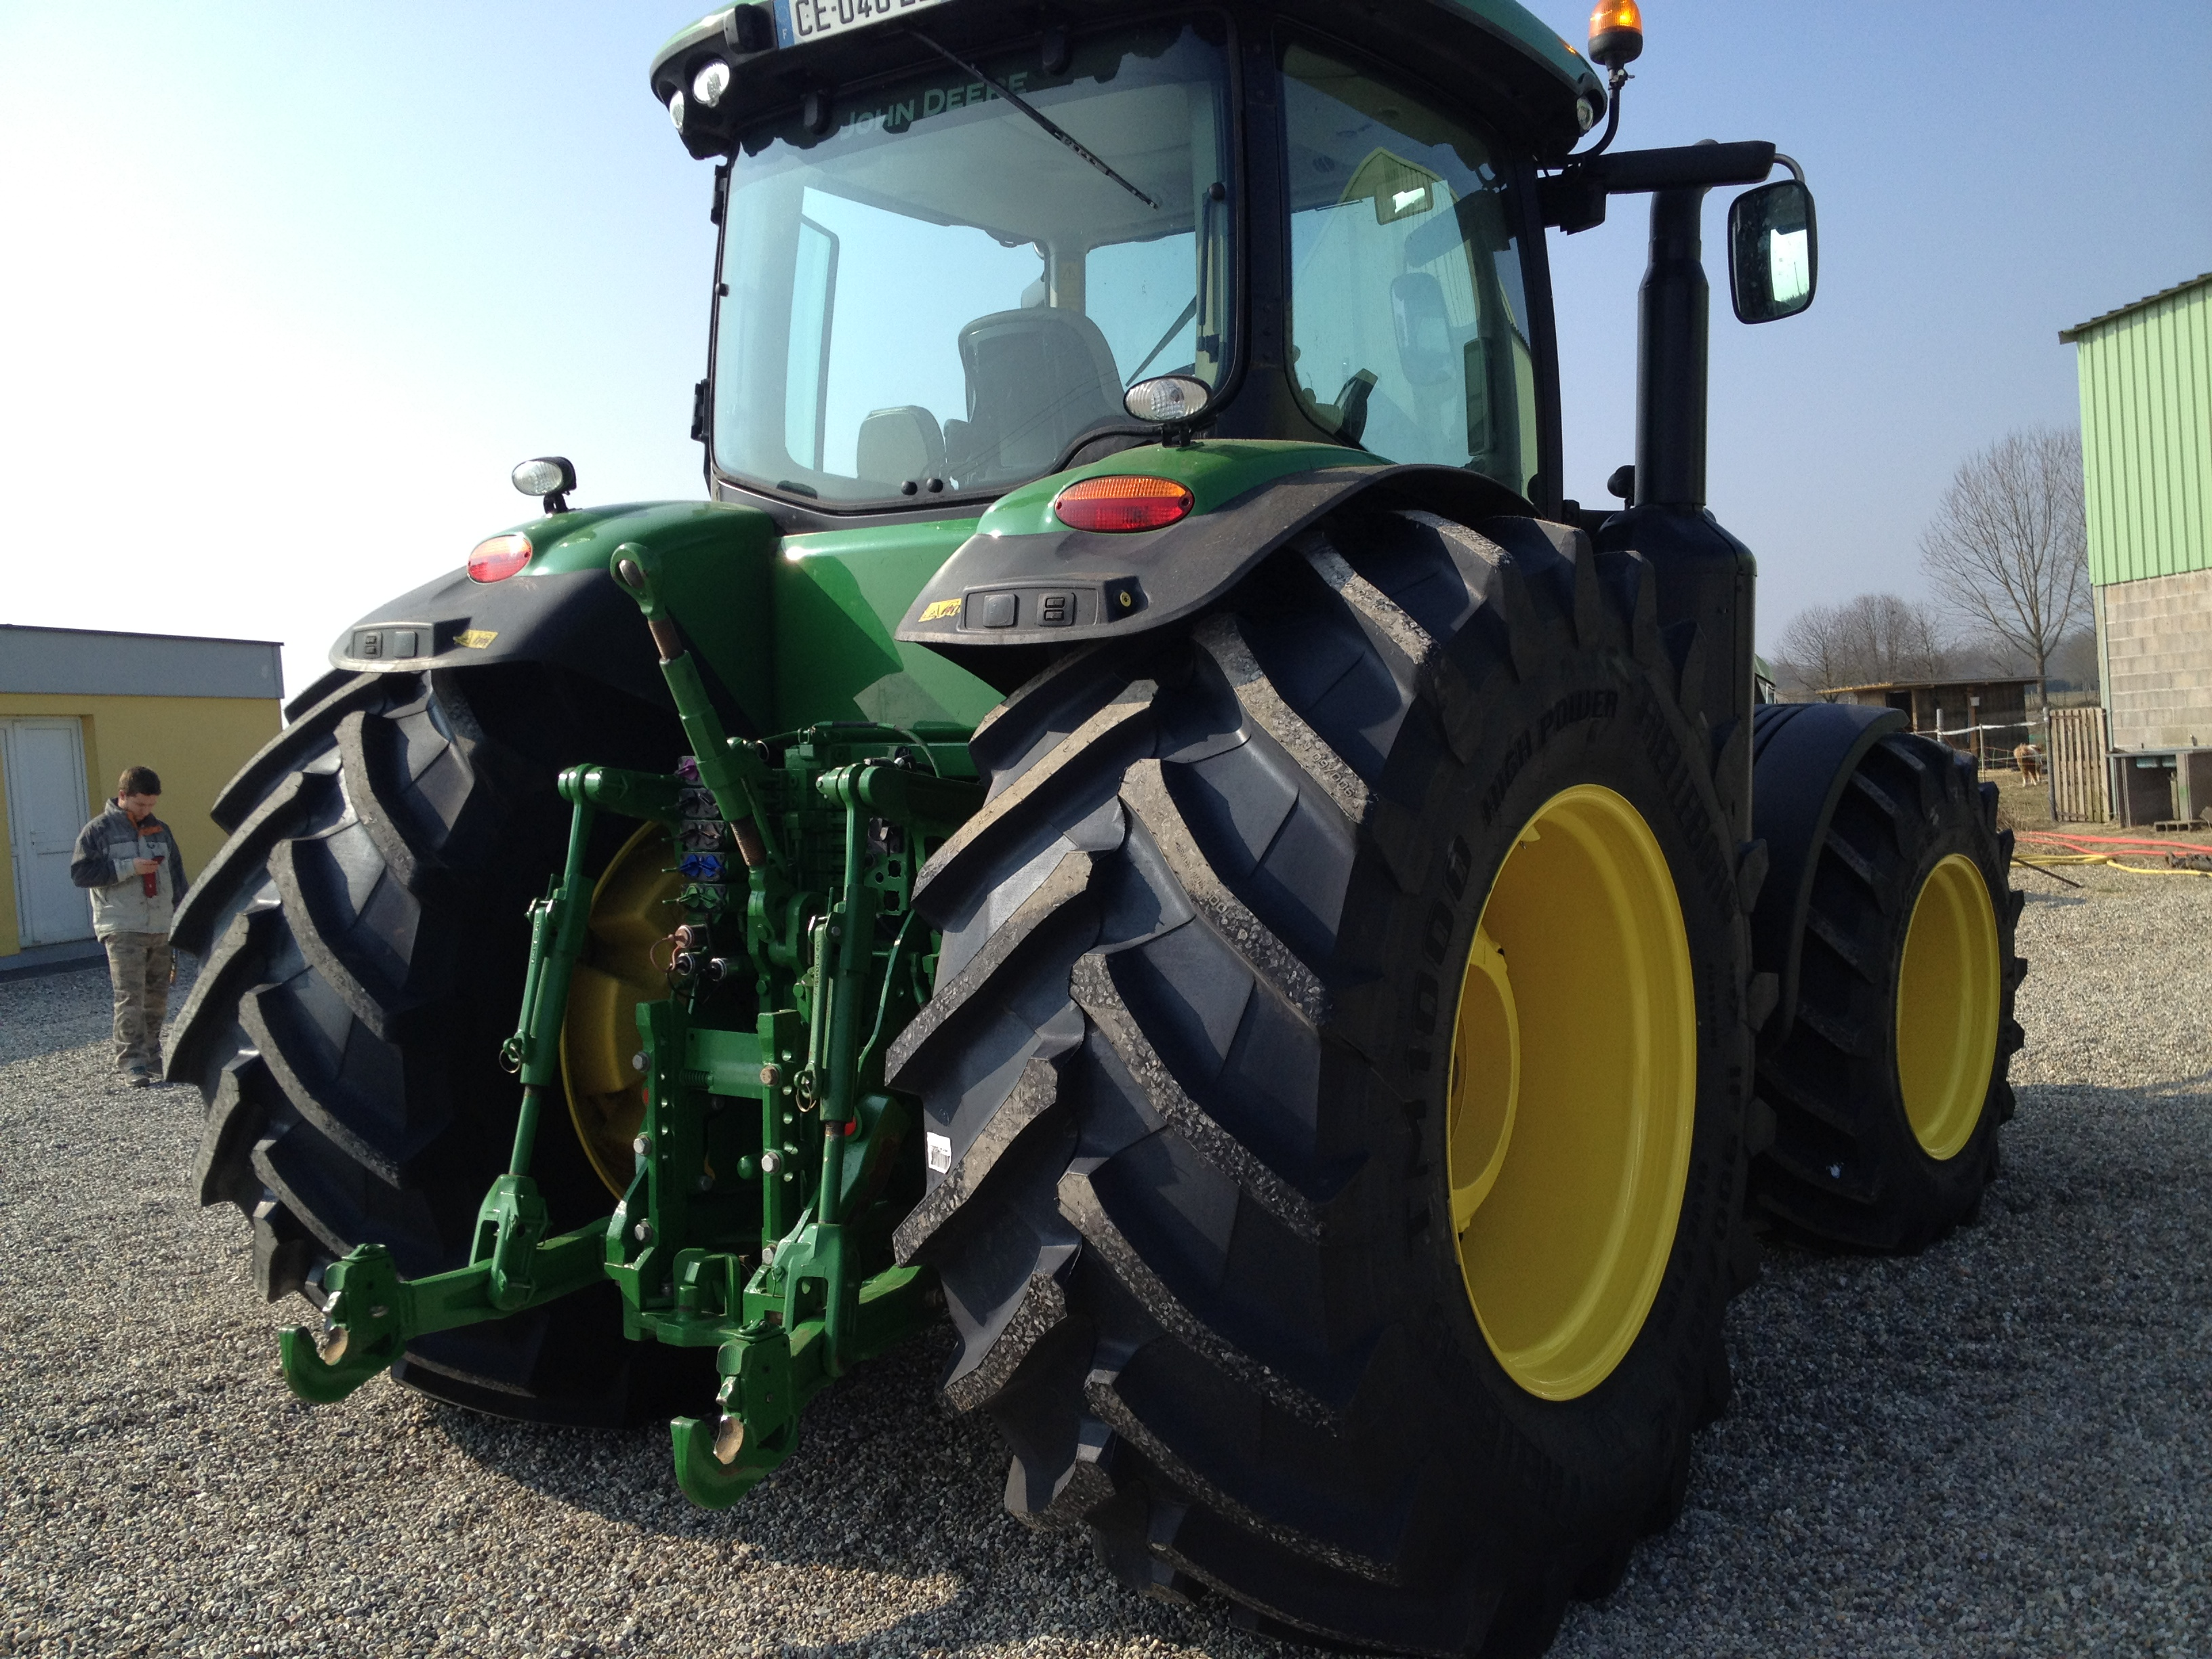 John Deere Tractor Tyre : Trelleborg tyre tm high power and john deere r